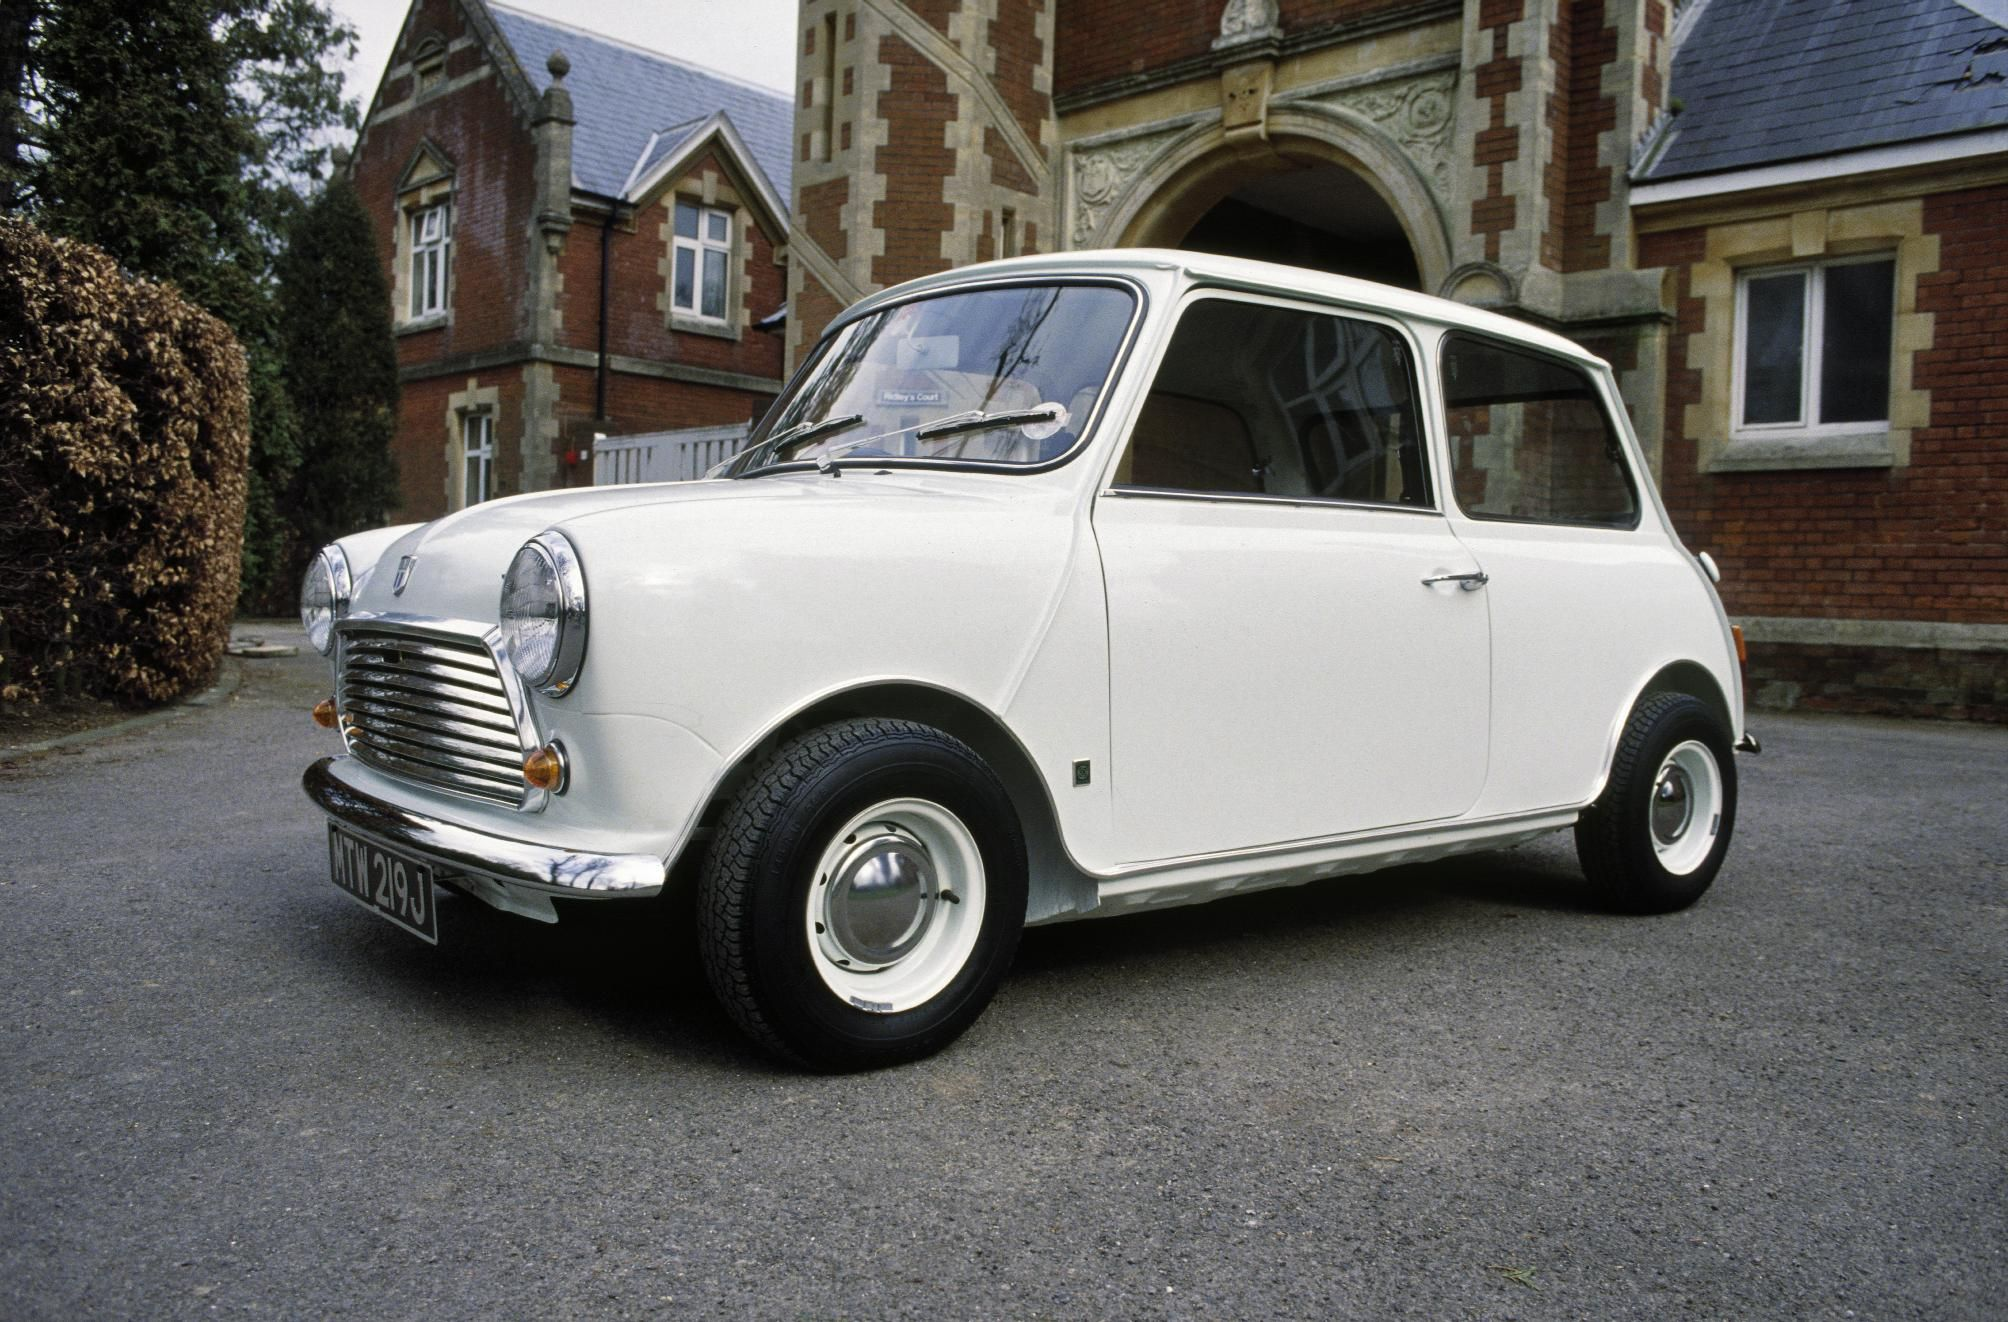 Classic old Minis - Google Search | BRITISH CLASSIC CARS ...